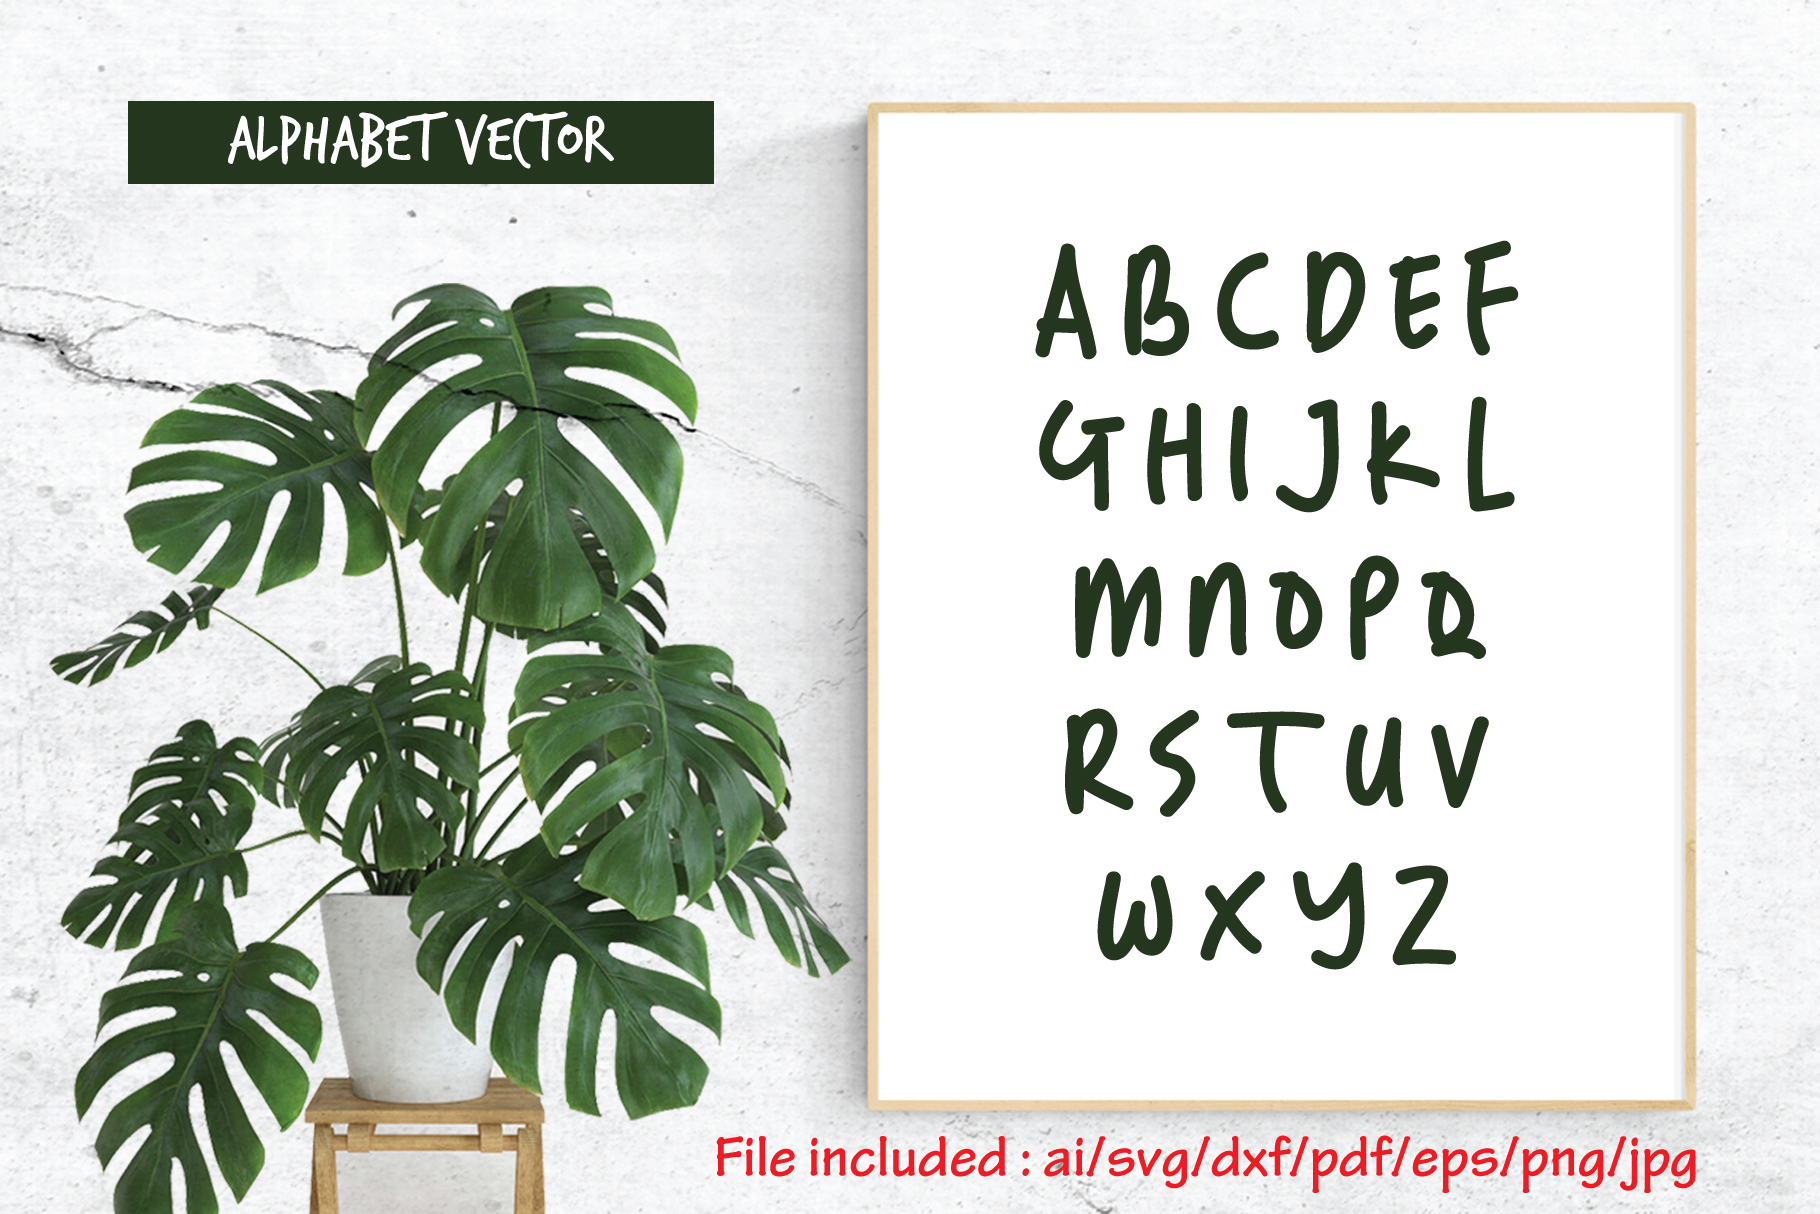 Download Free Alphabet Vector 27 Random Handwritten Graphic By Atjcloth for Cricut Explore, Silhouette and other cutting machines.